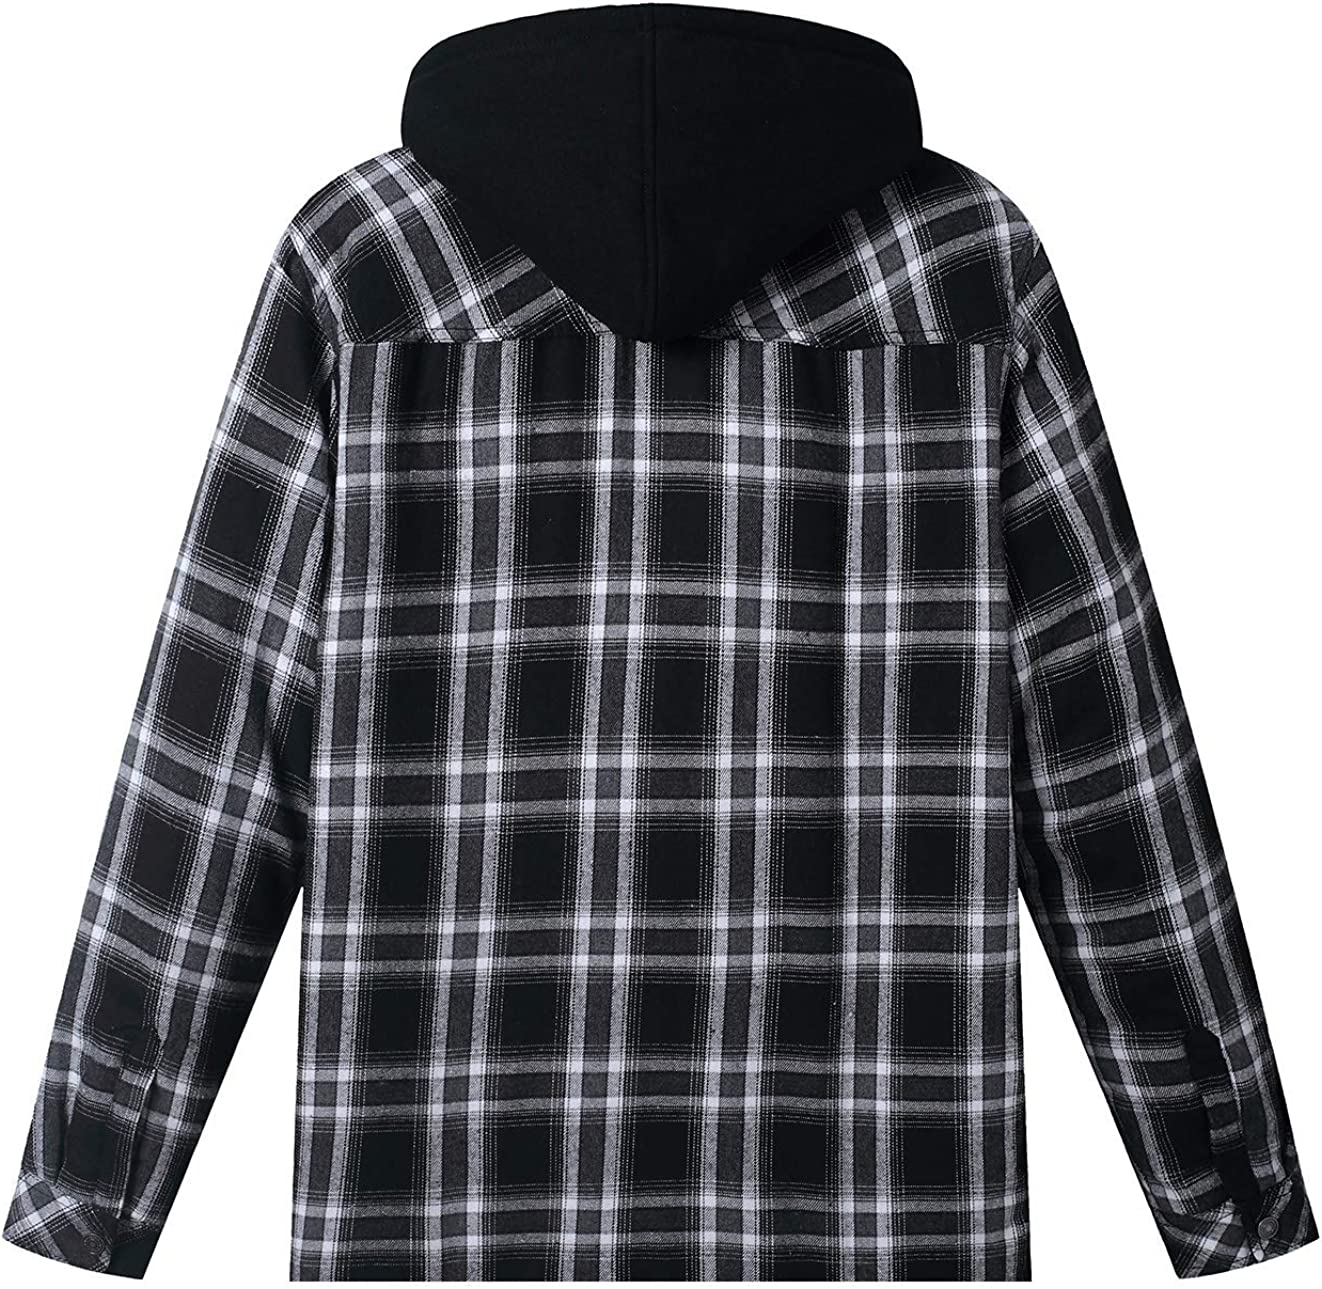 WenVen Men's Thicken Plaid Flannel Quilted Shirts Jacket with Removable Hood